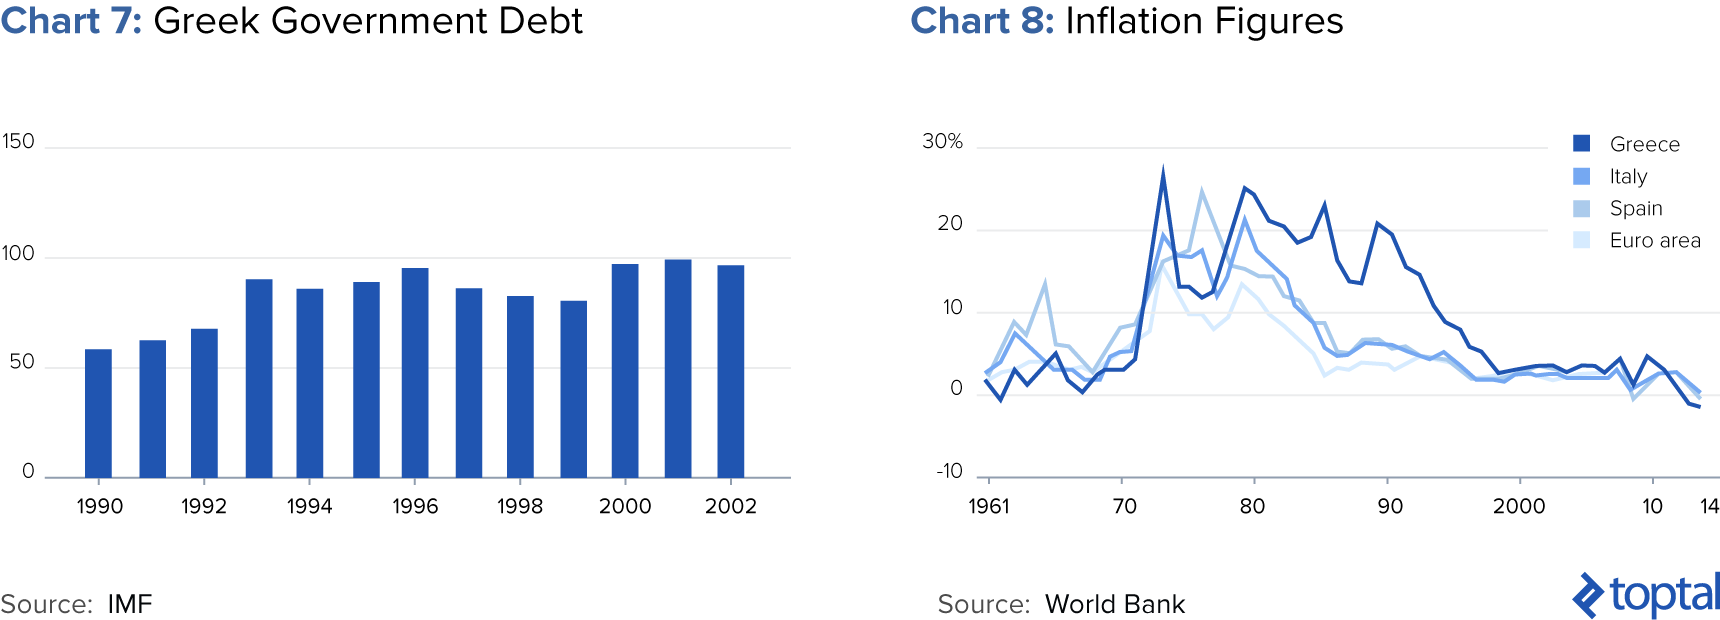 Chart 7: Greek Government Debt; and Chart 8: Inflation Figures